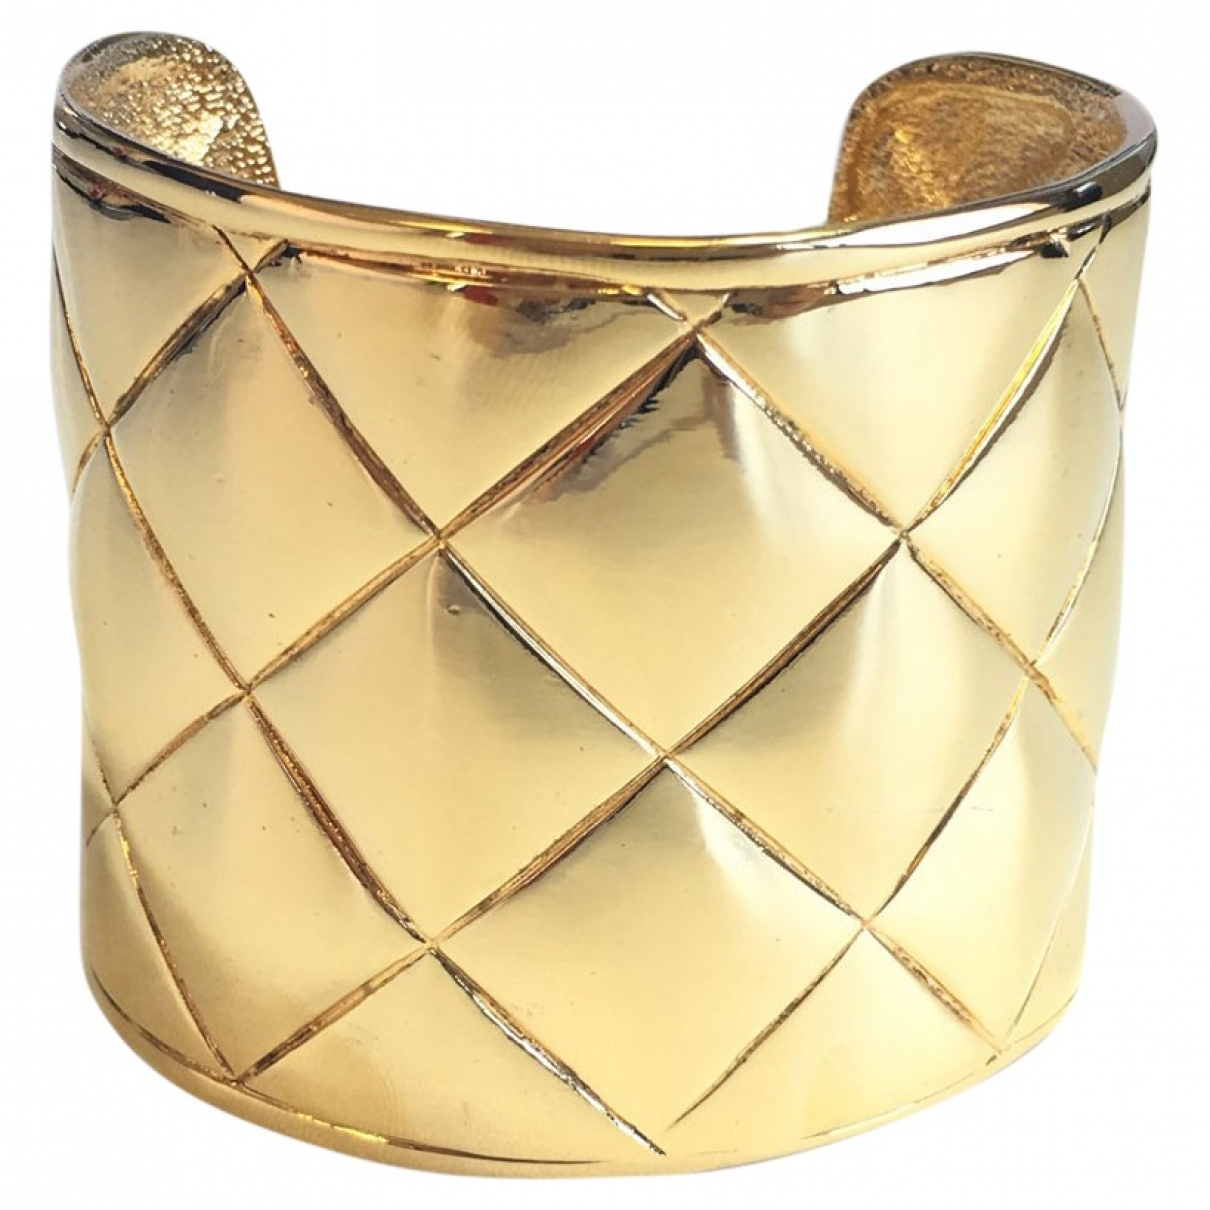 Chanel Matelasse Armband in  Gold Metall